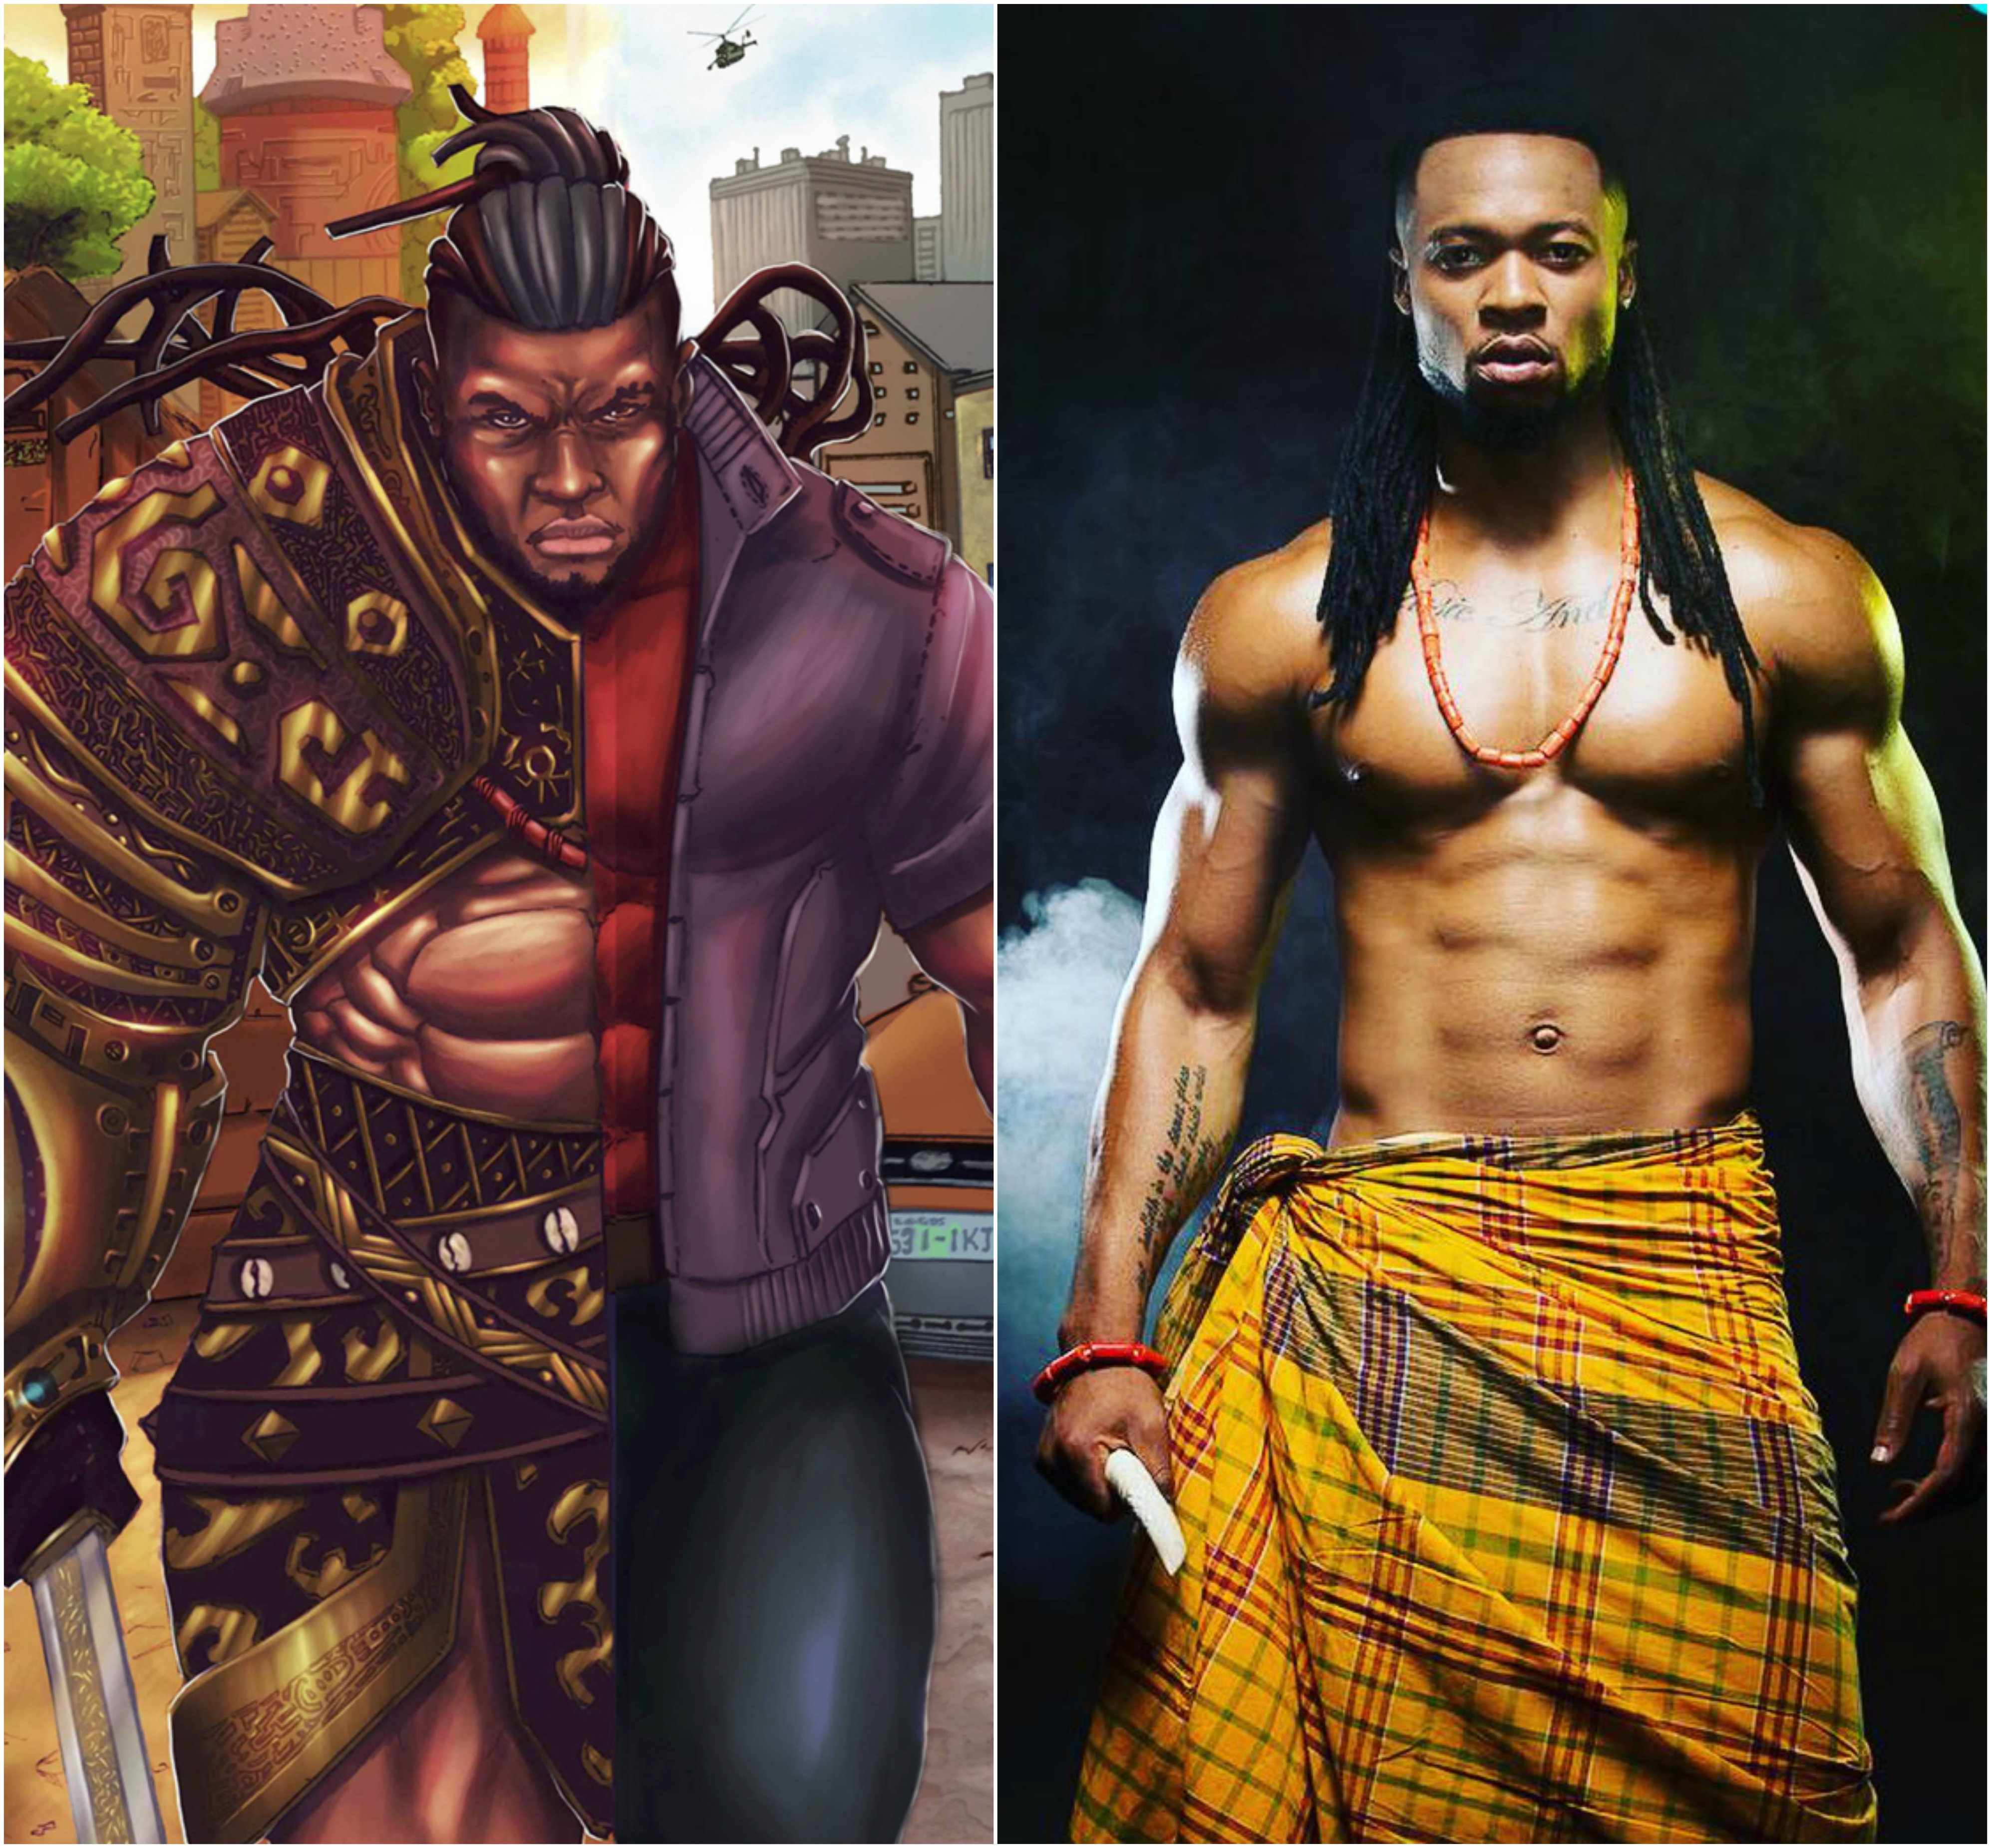 Alaric and Flavour side by side comparison in this African comic book, Scion: Immortal.